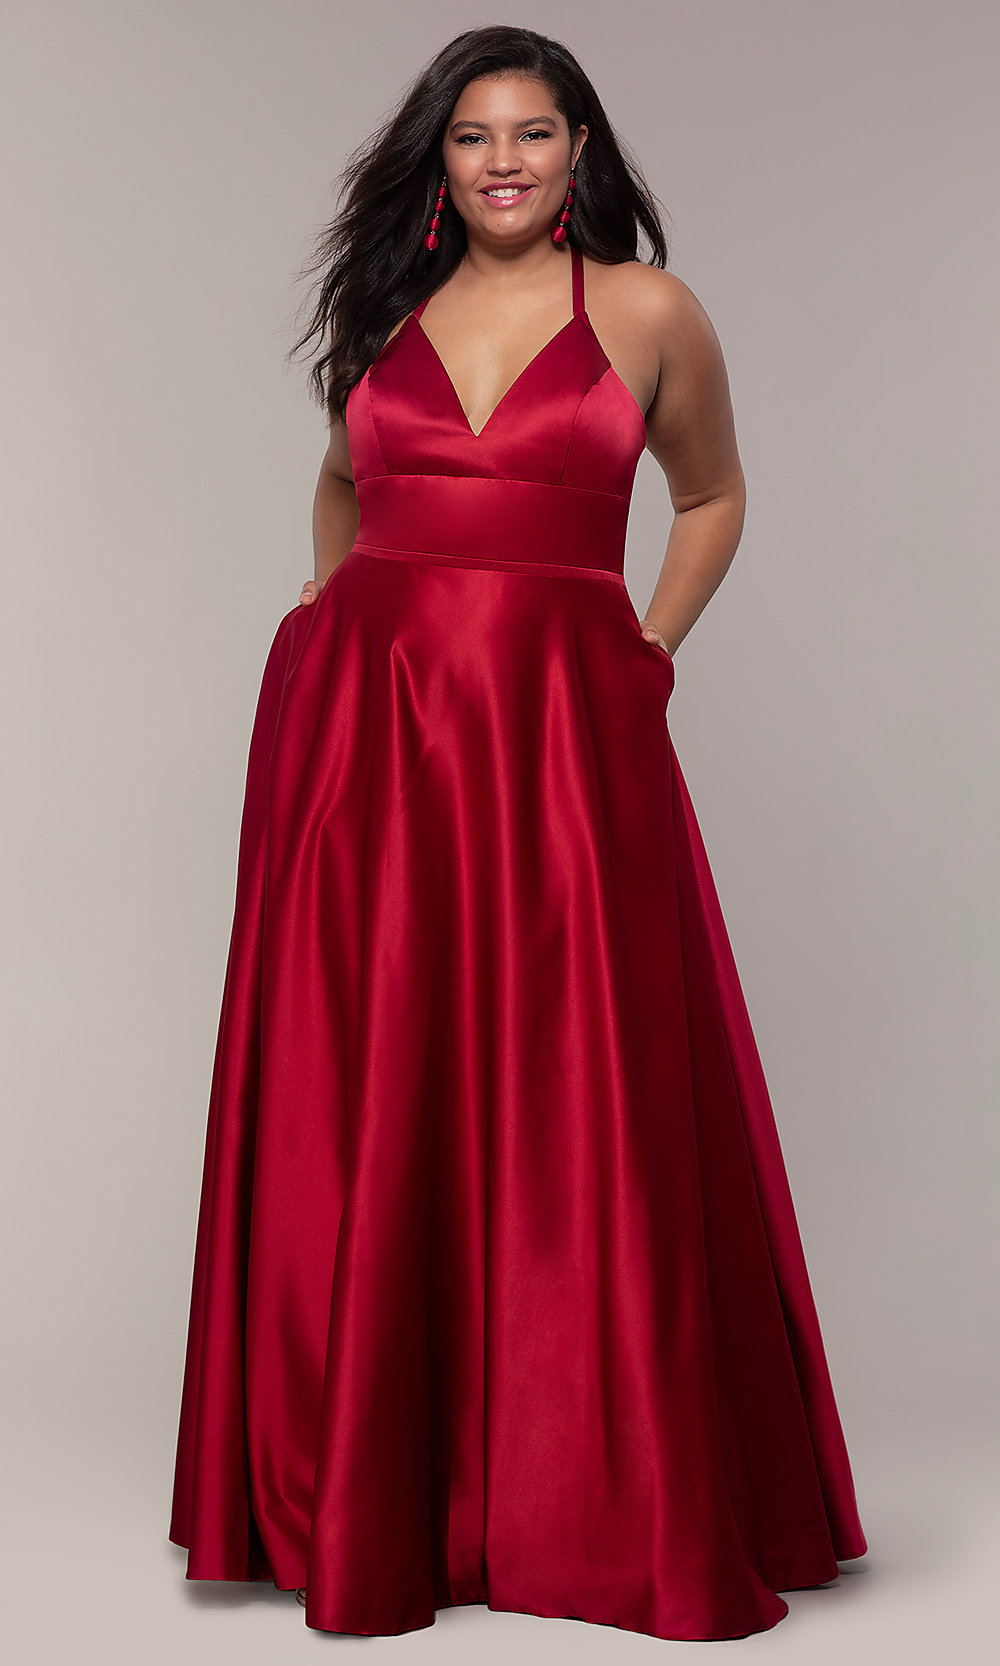 A-Line Satin Plus-Size Prom Dress with Corset